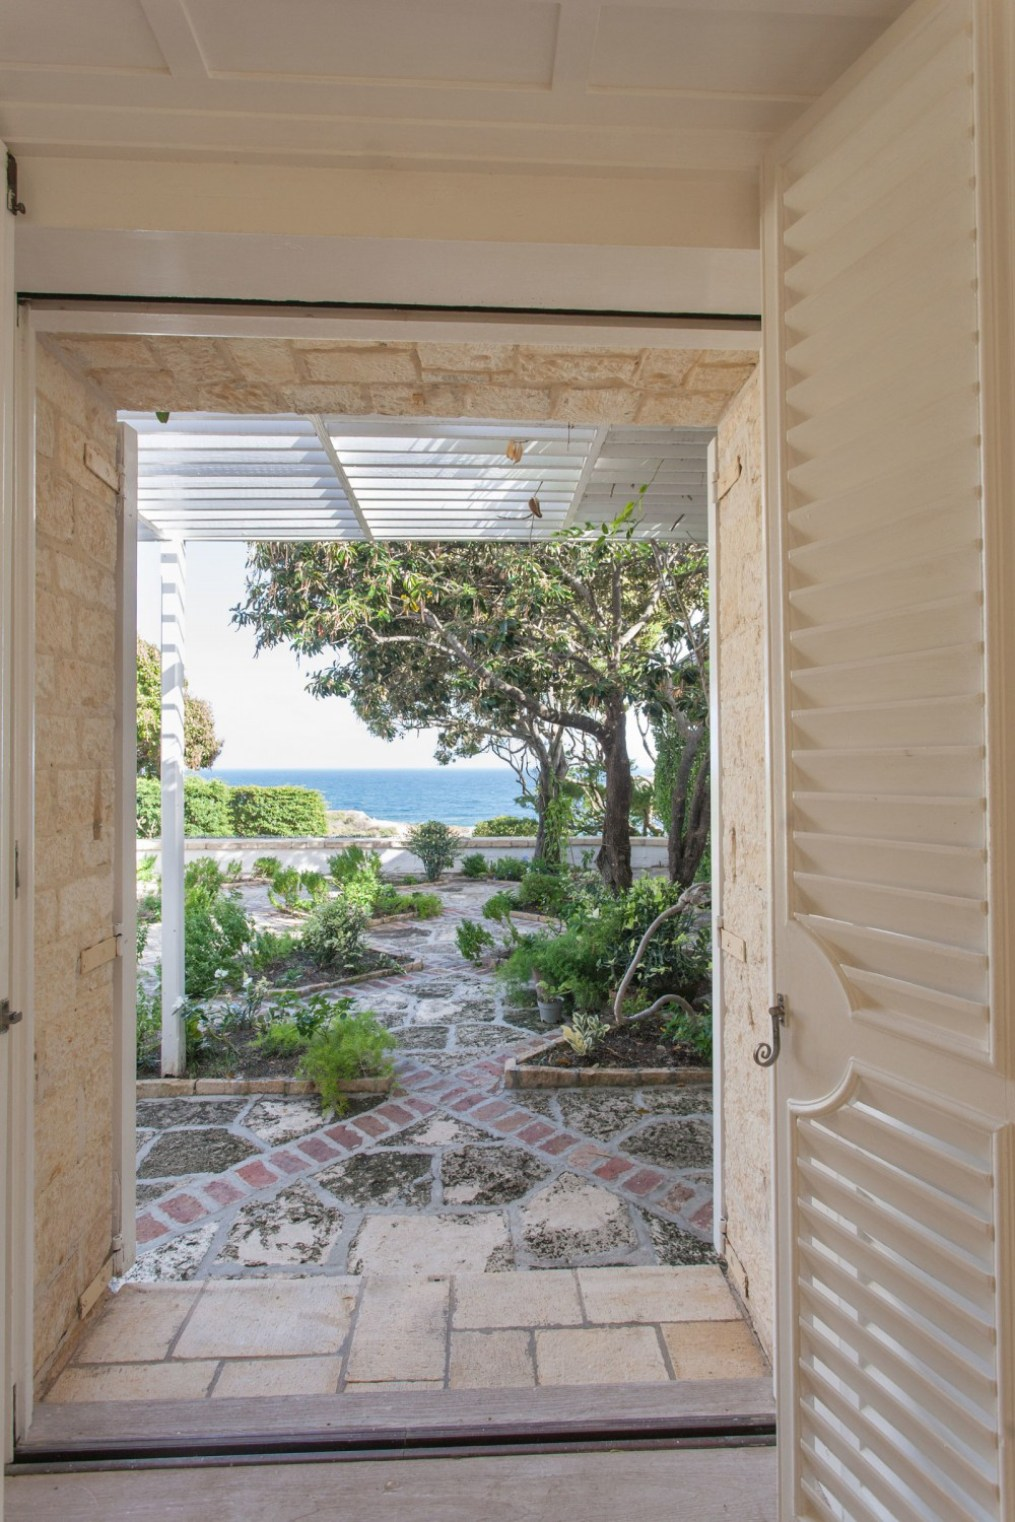 a white open door leads out to a garden and the ocean beyond